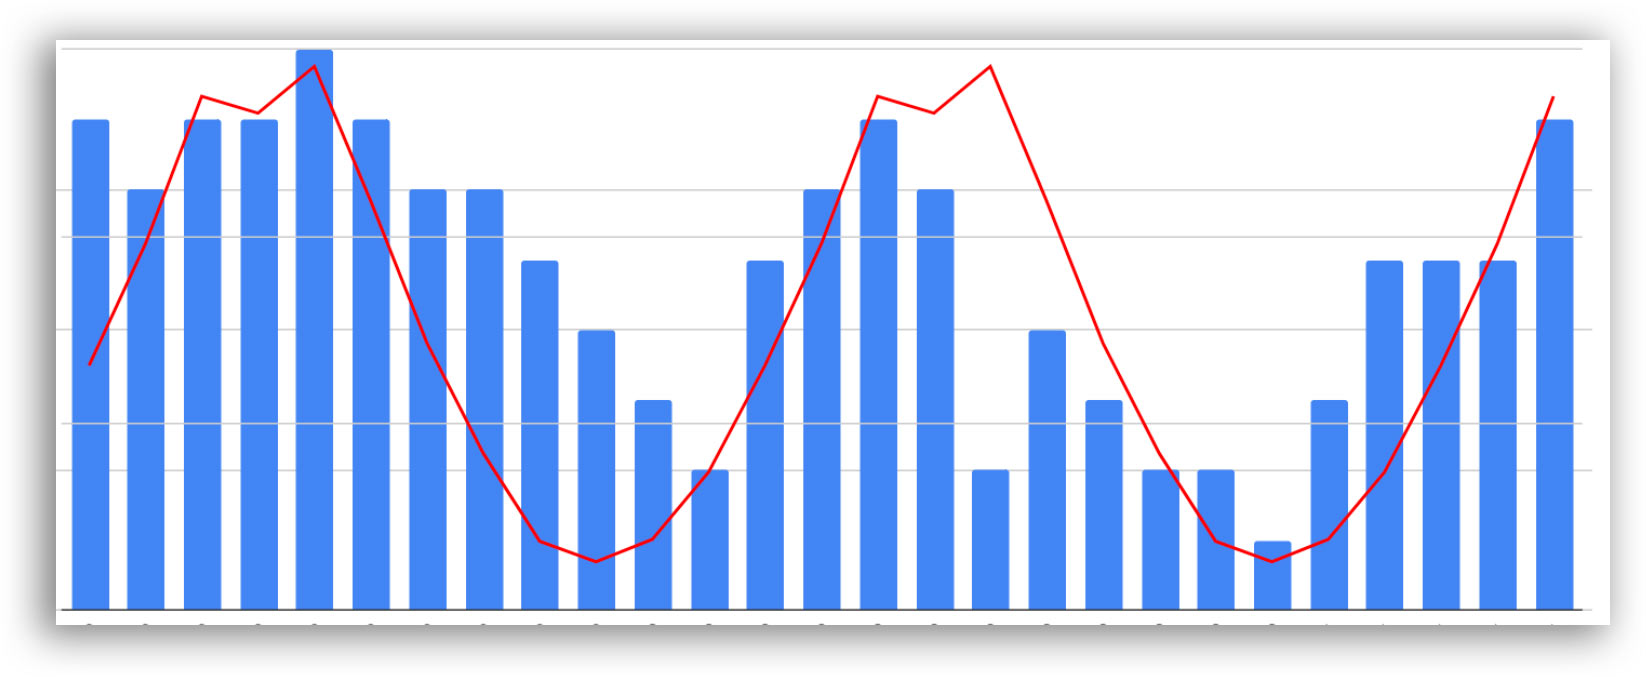 Sunshine hours (red line) and our Officevibe Pulse Survey results (blue bars) with correlation.